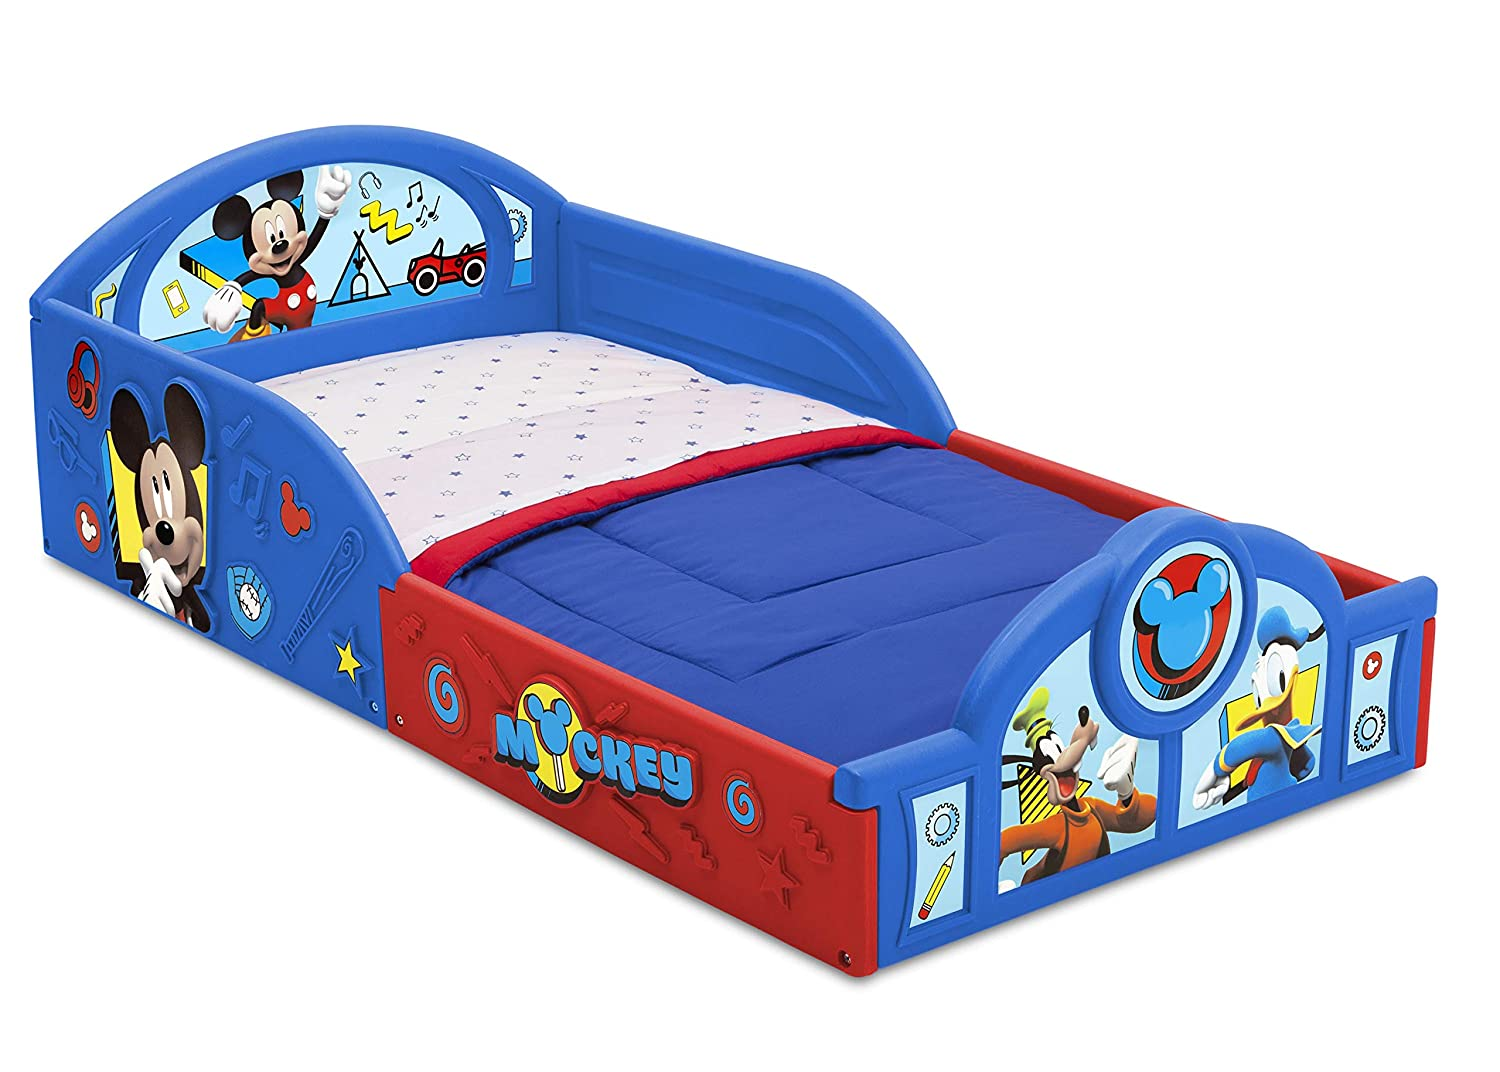 Disney Mickey Mouse Deluxe Toddler Bed with Attached Guardrails